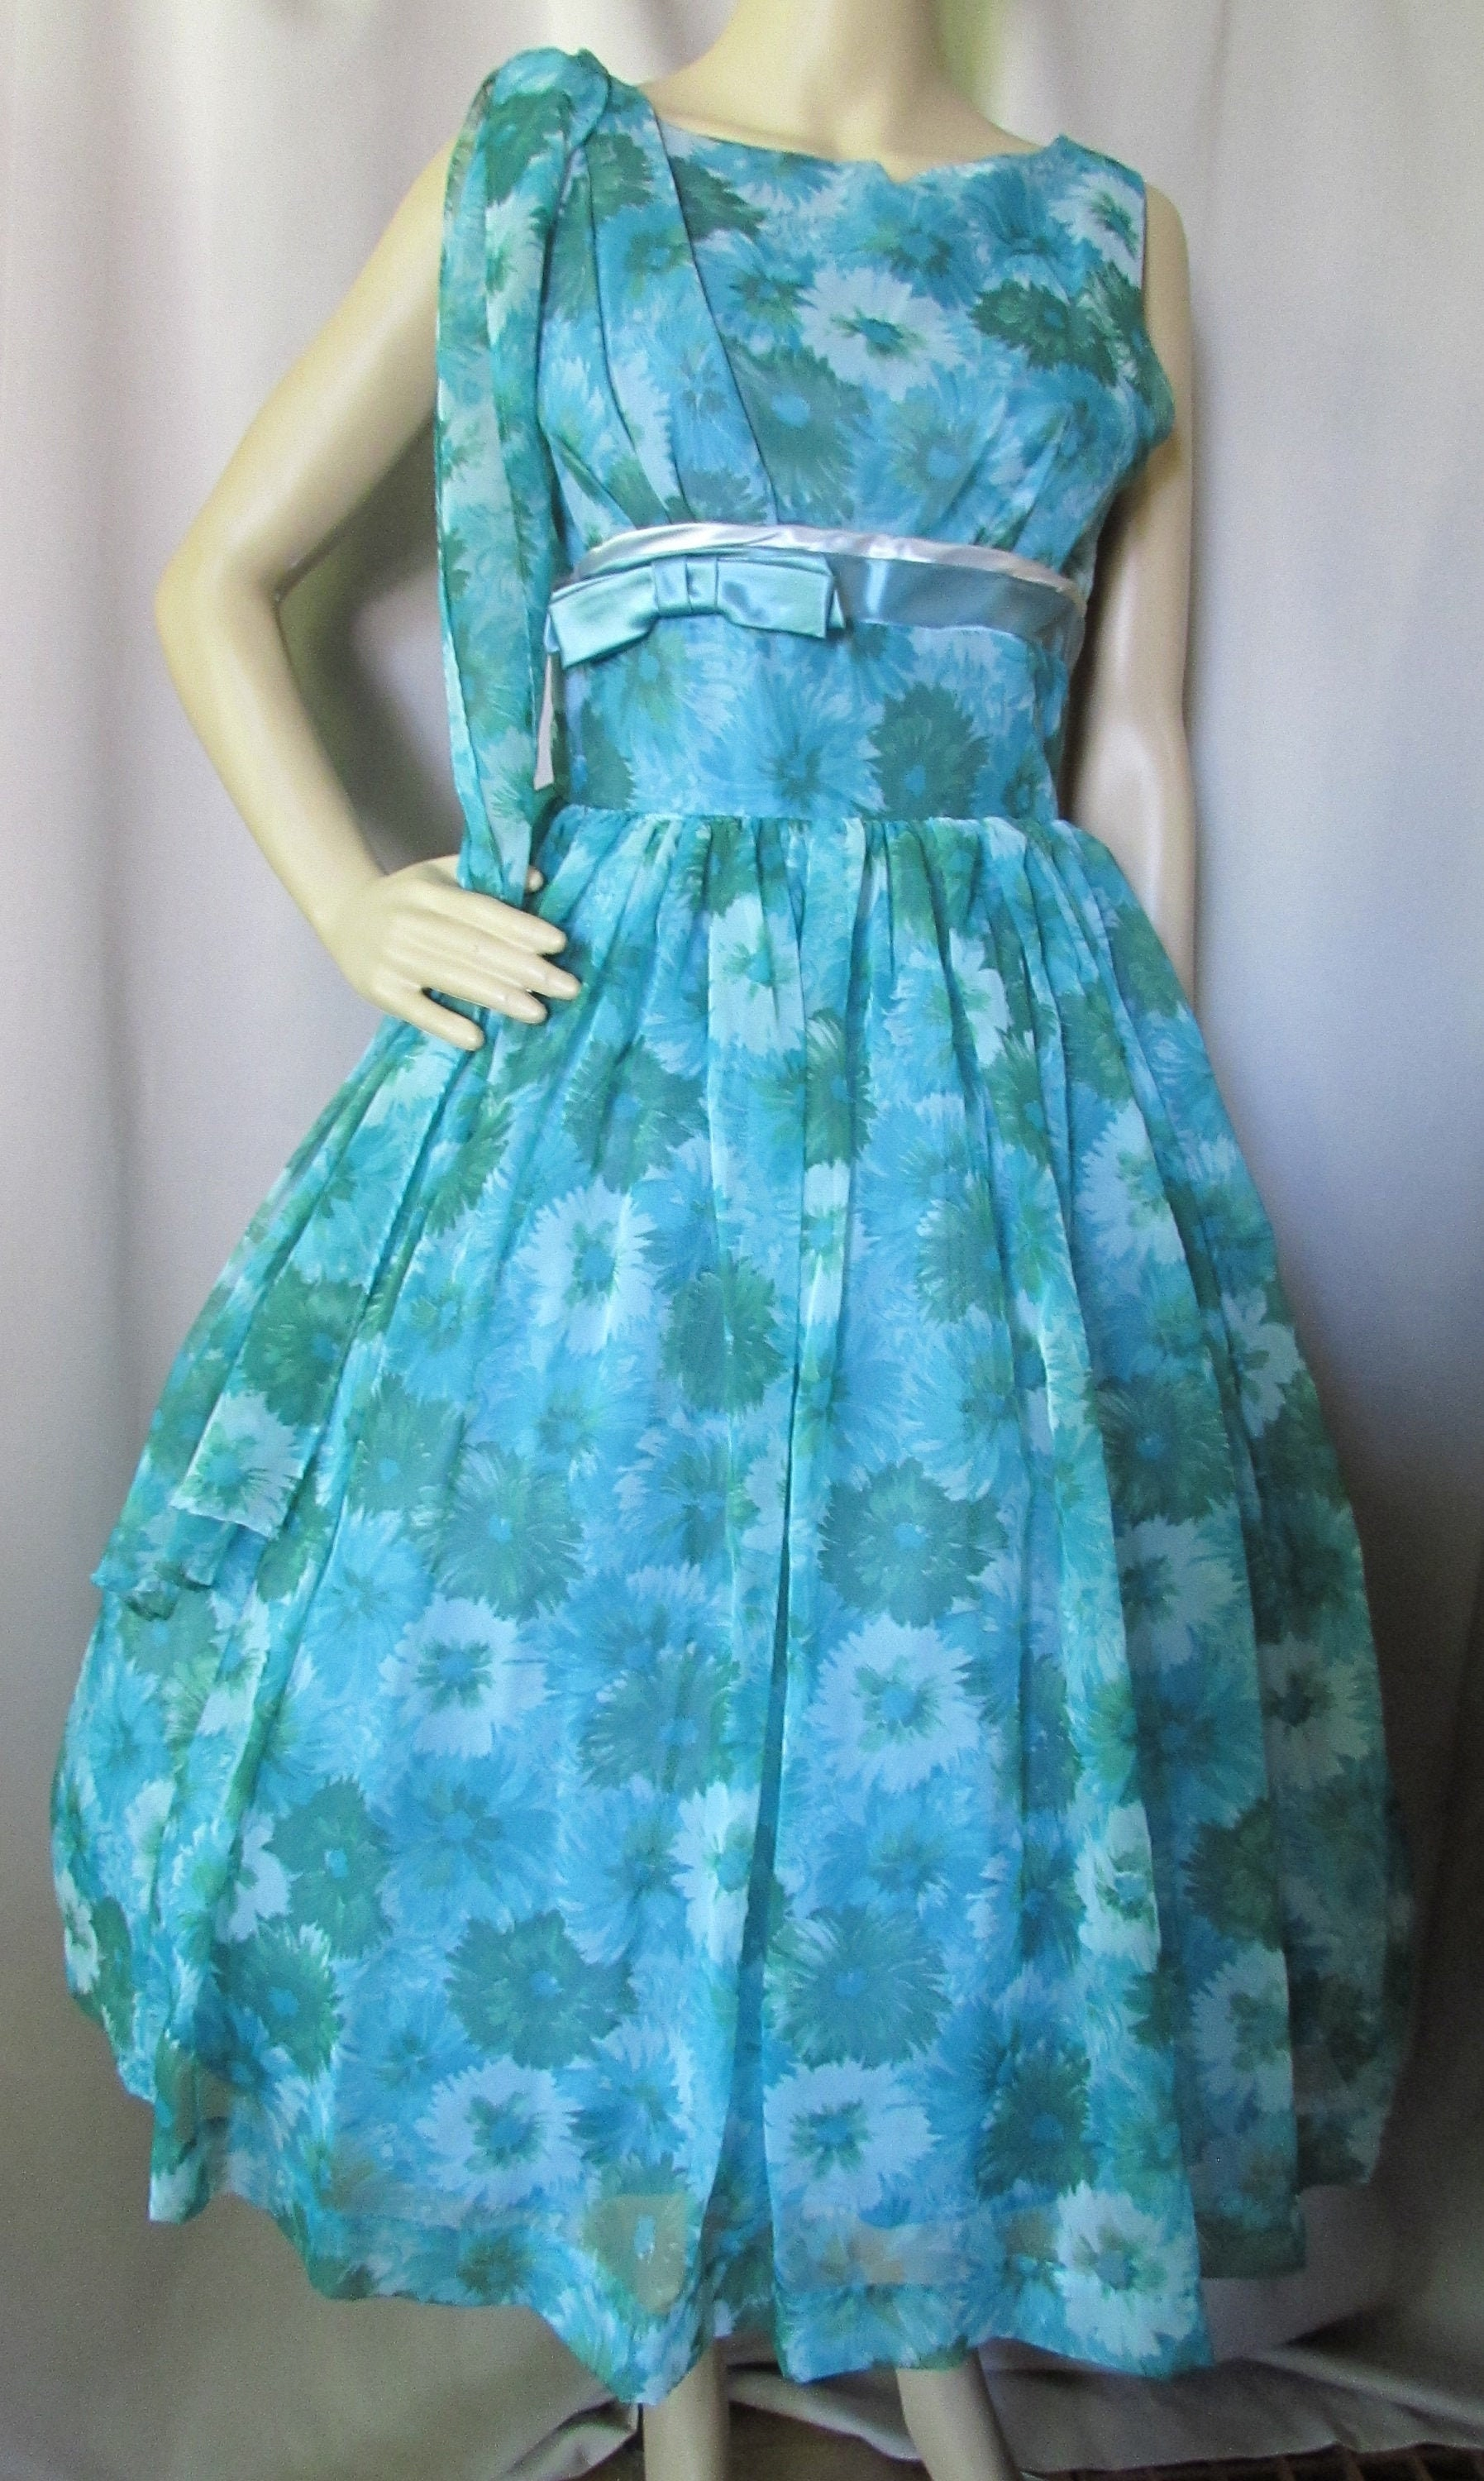 Vintage Scarf Styles -1920s to 1960s 1960 Era Prom Dress Cocktail Chiffon Floral Teal Turquoise Green Full Skirt Fitted Bodice Satin Cummerbund Vintage Clothing Size 13 $0.00 AT vintagedancer.com